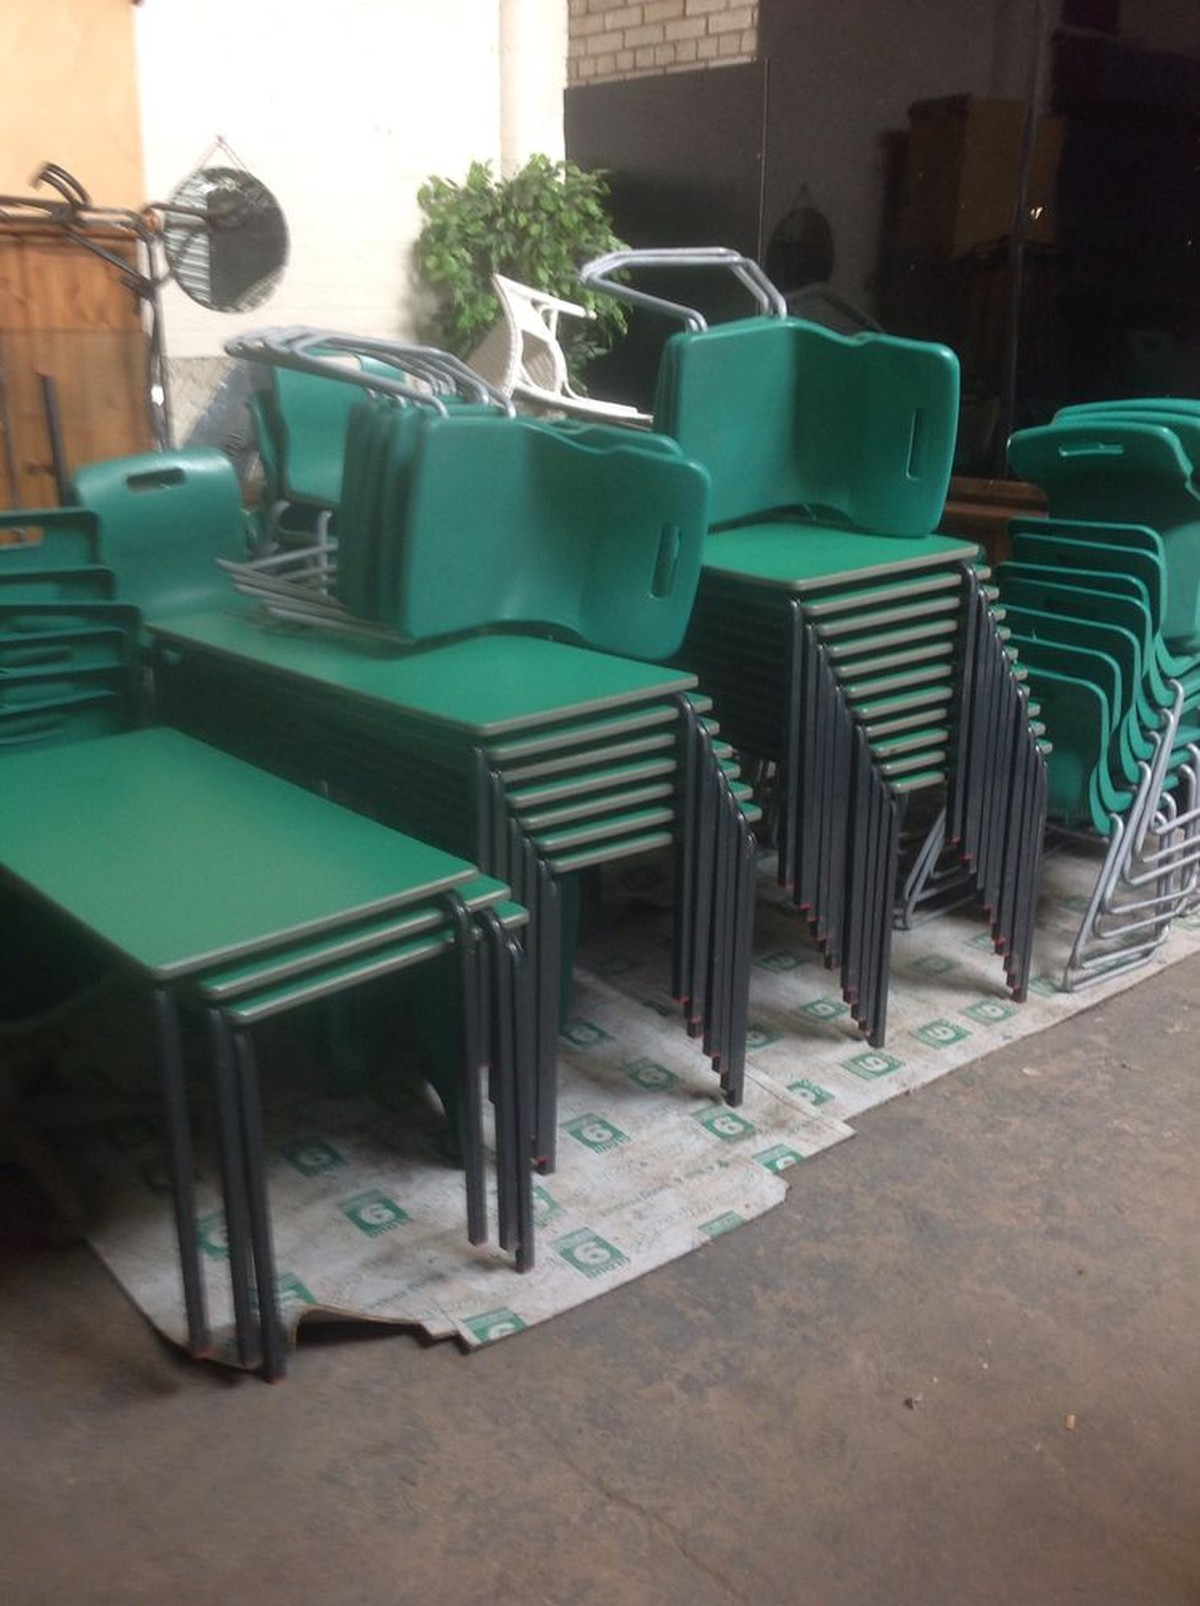 Second Hand Designer Möbel Secondhand Chairs And Tables School Playgroup And